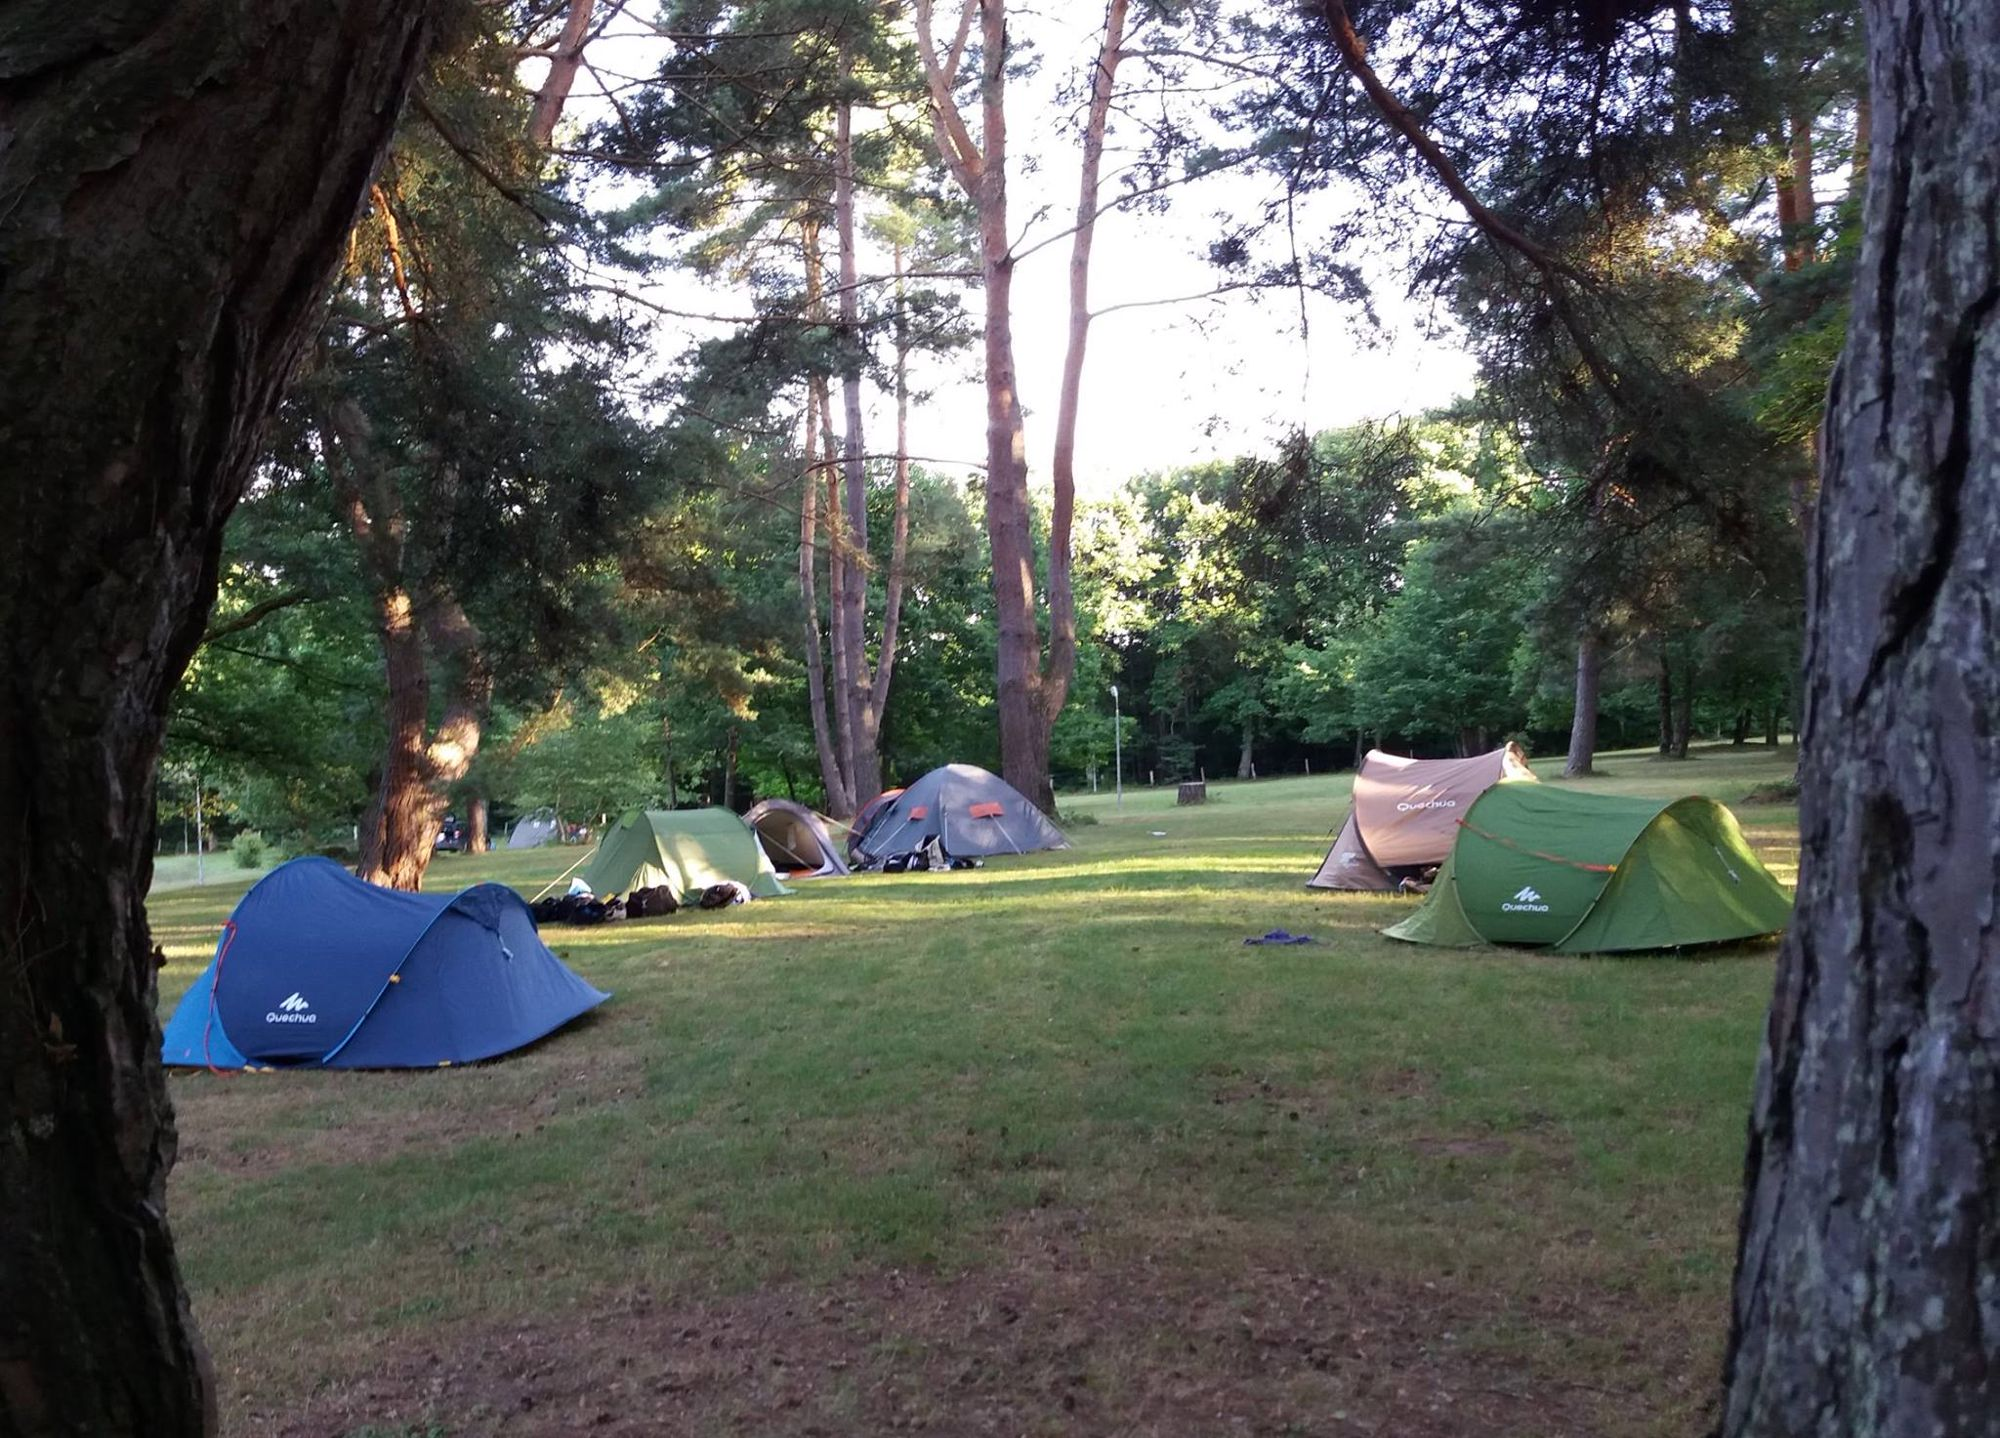 Campsites in France - campsites france at Cool Camping